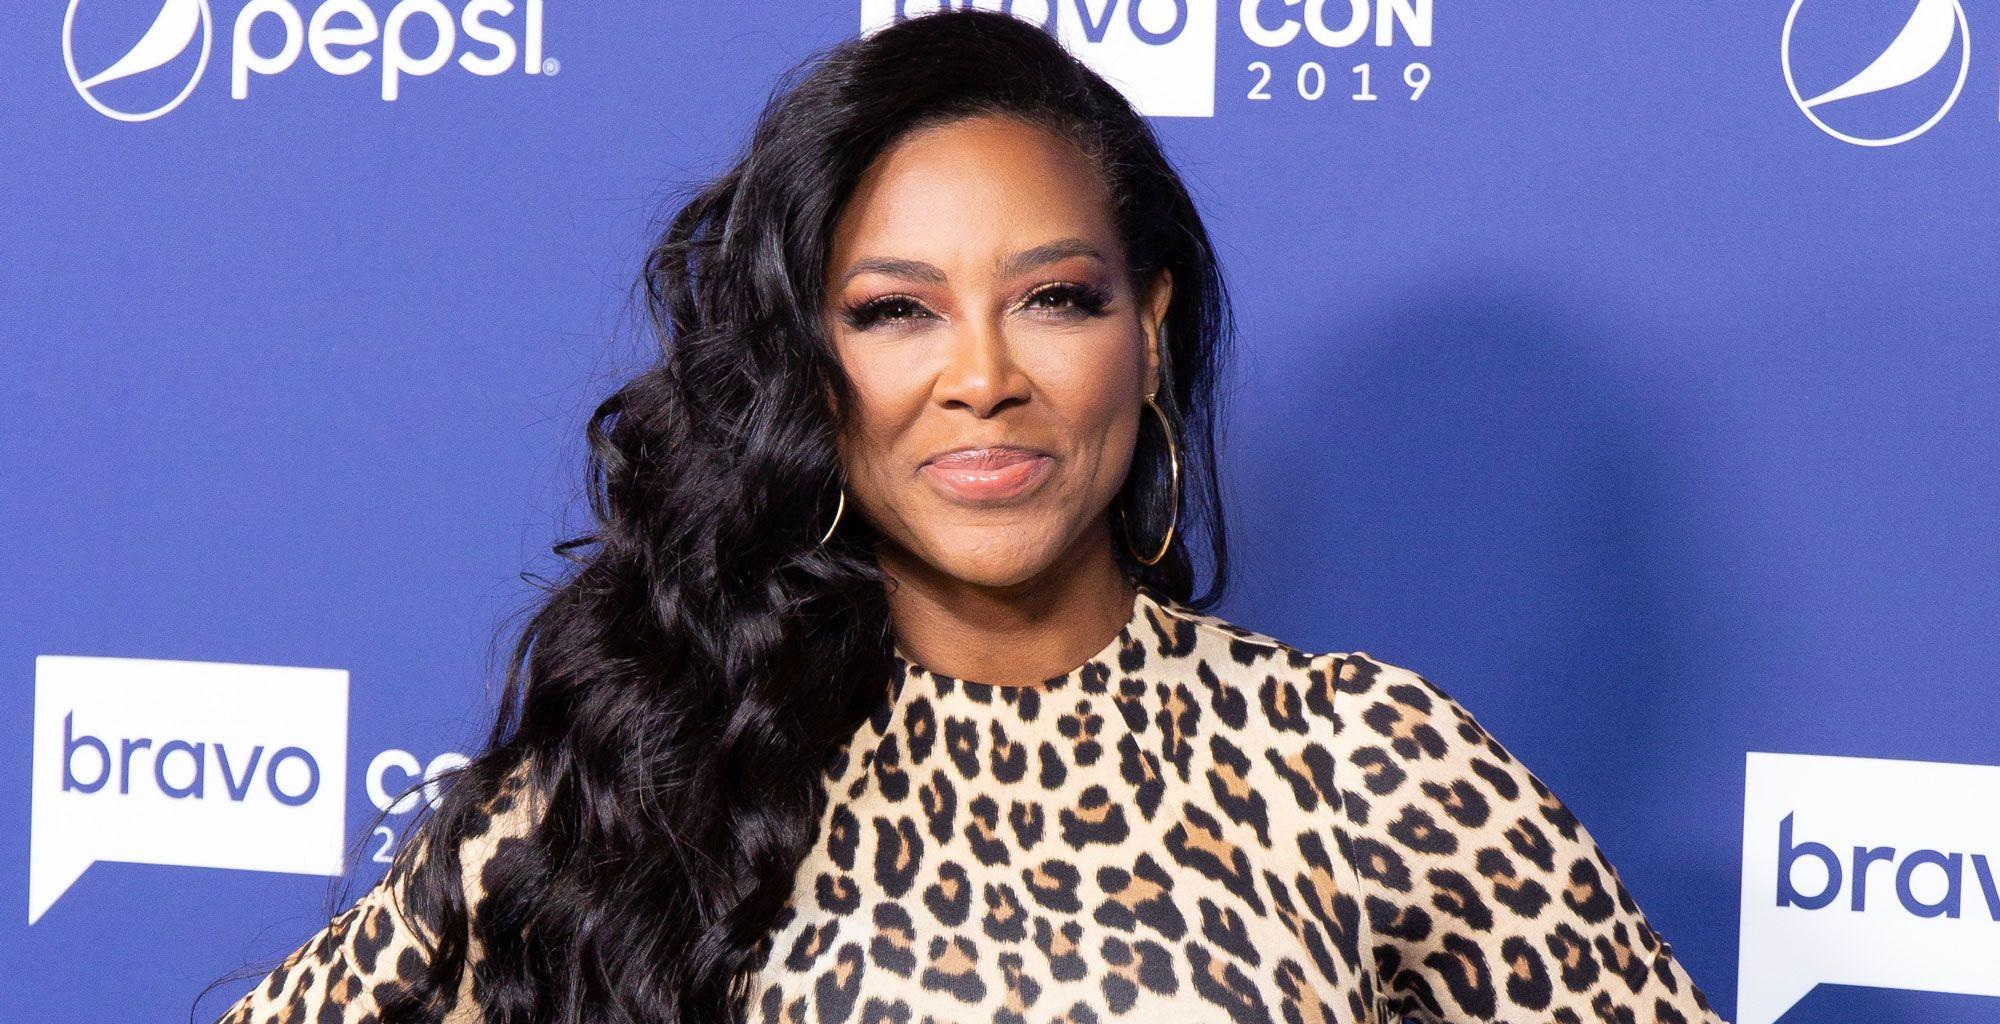 Kenya Moore Shares A Gorgeous Image: 'Sunny With A Little Shady'